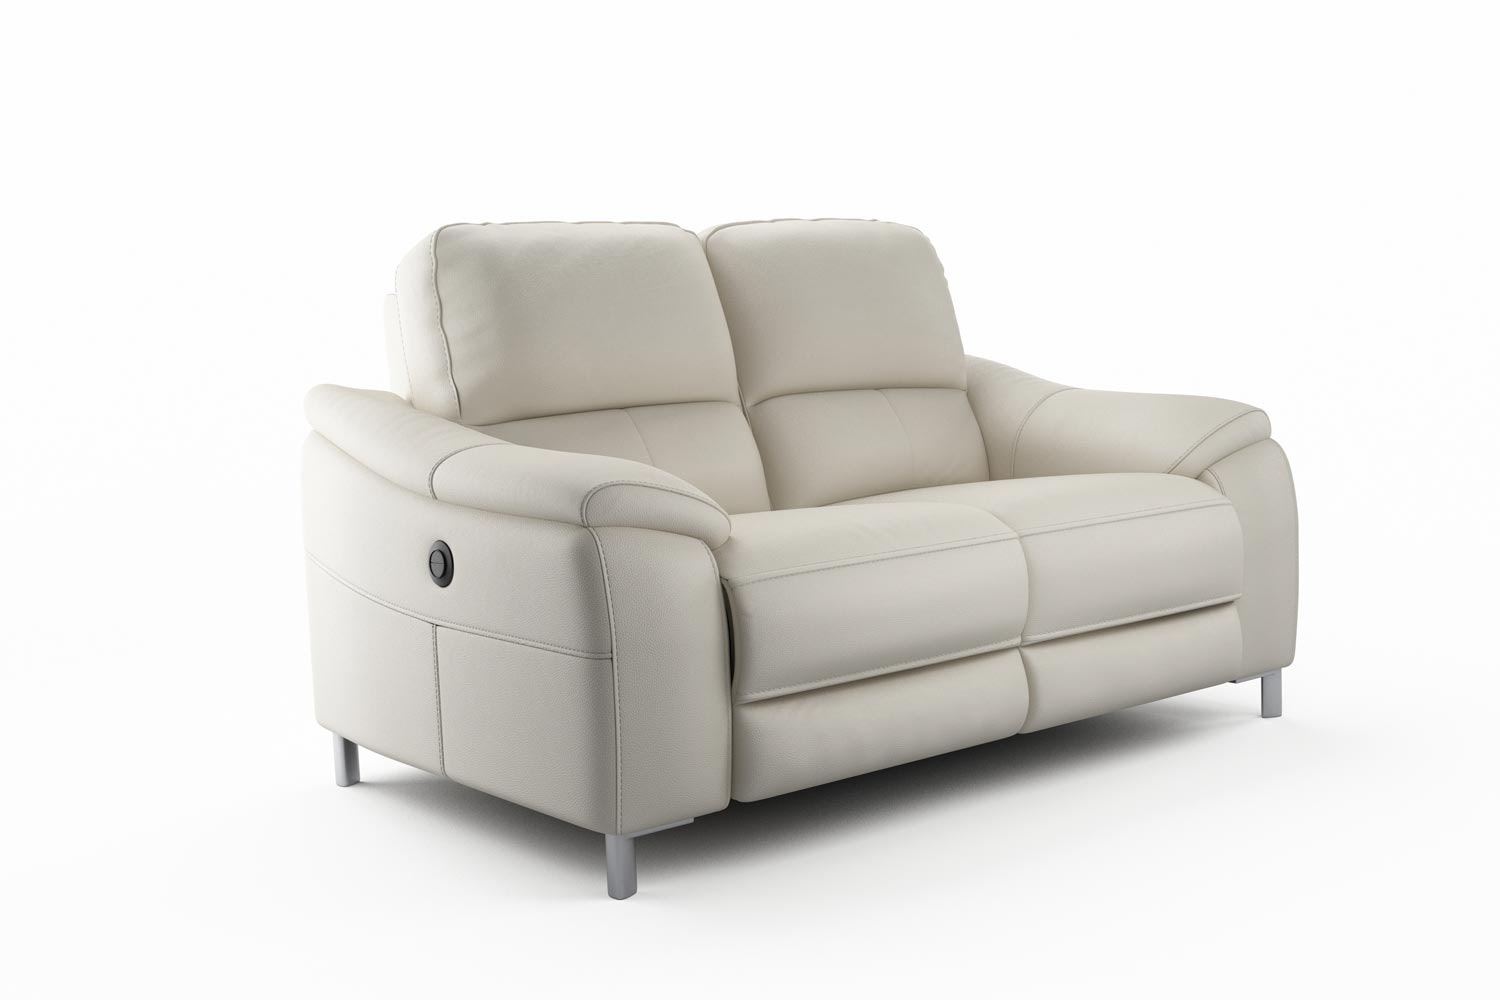 Yvezza 2 Seater Electric Recliner Sofa| 5 Colour Options